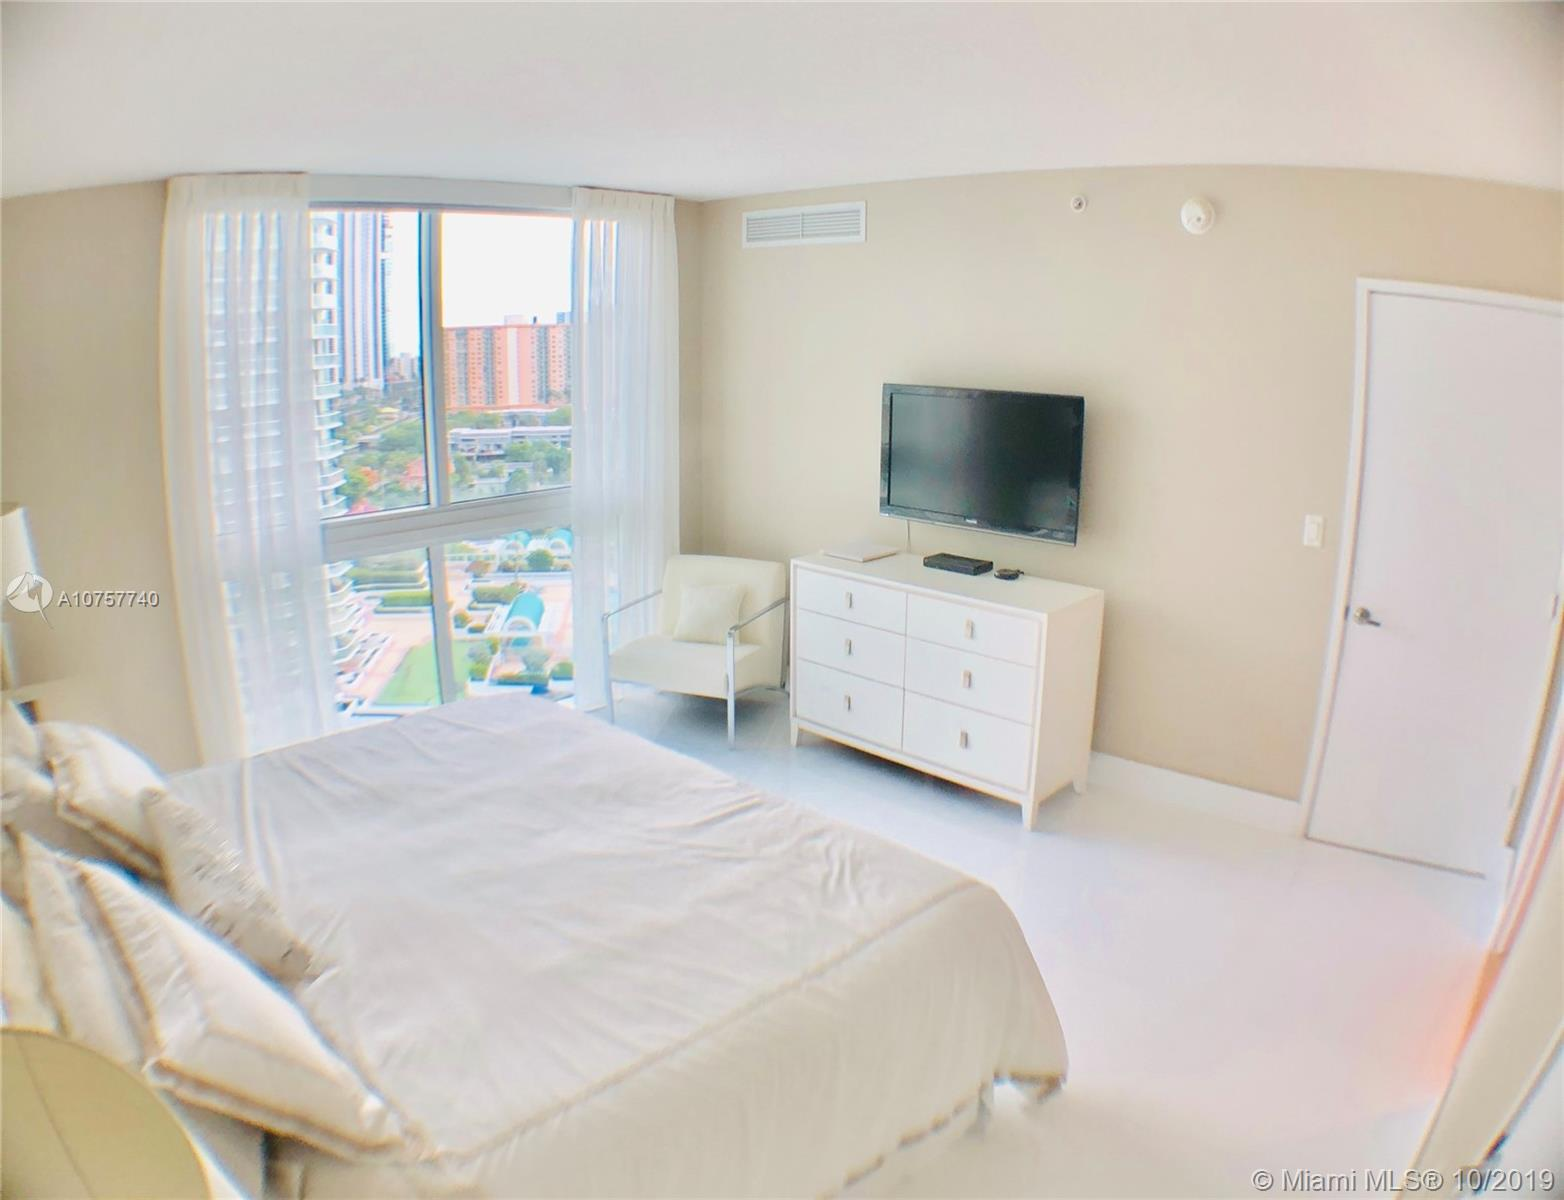 250 SUNNY ISLES BL # 1506, Sunny Isles Beach, Florida 33160, 3 Bedrooms Bedrooms, ,2 BathroomsBathrooms,Residential Lease,For Rent,250 SUNNY ISLES BL # 1506,A10757740